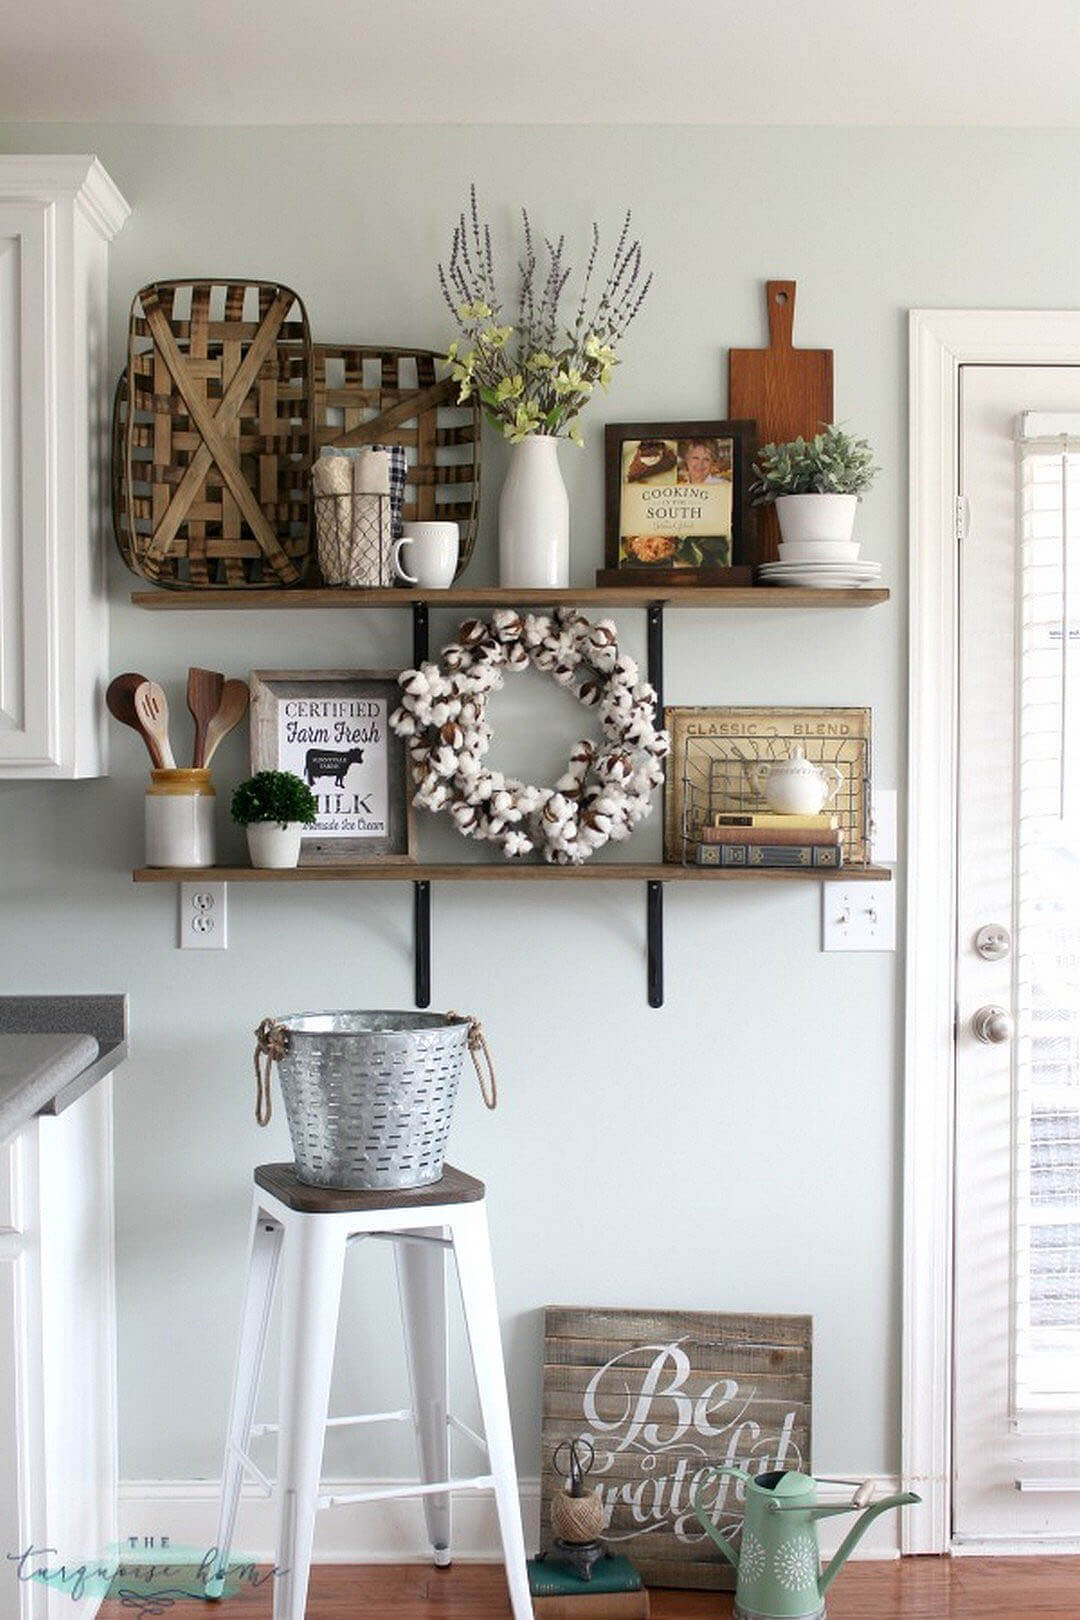 Charmant Rustic Farmhouse Kitchen Shelf Display